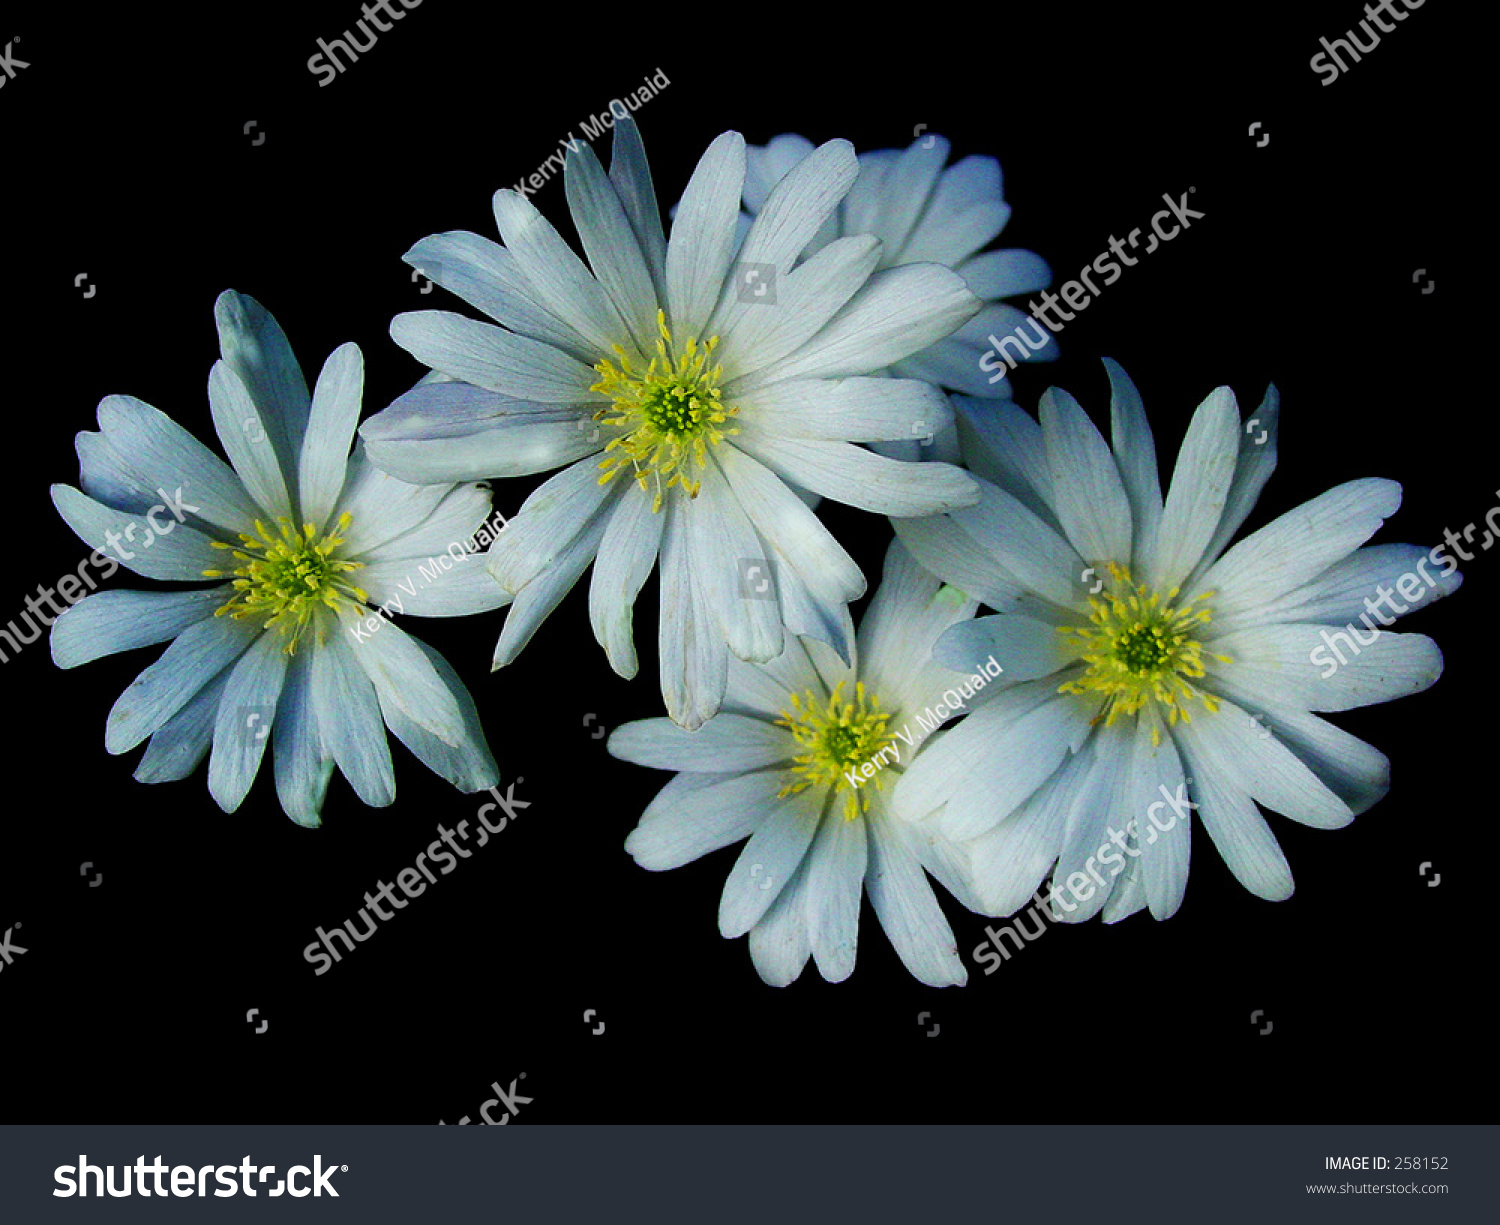 Closeup four white yellow daisy type stock photo royalty free close up of four white and yellow daisy type flowers on a black background izmirmasajfo